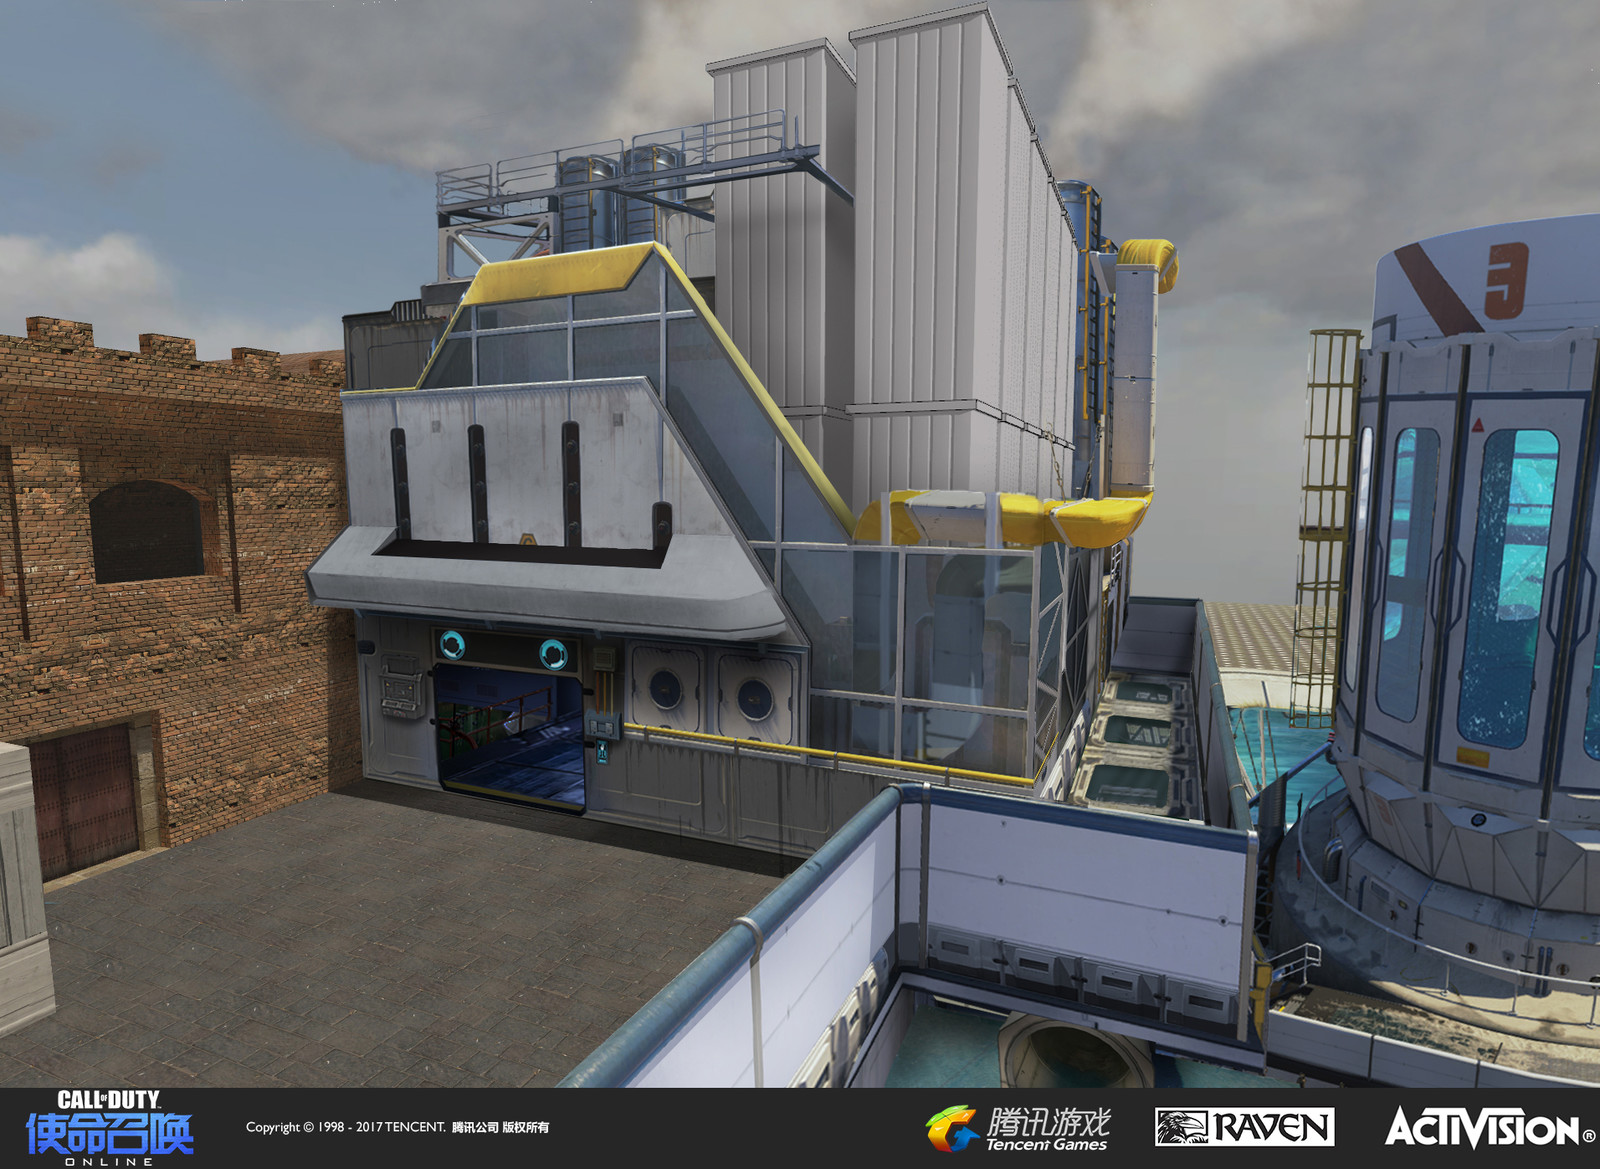 """Concept art I created using photoshop of a water filtration plant. The design aesthetic was influenced by elements of the map """"Solar"""" from Call of Duty: Advanced Warfare"""